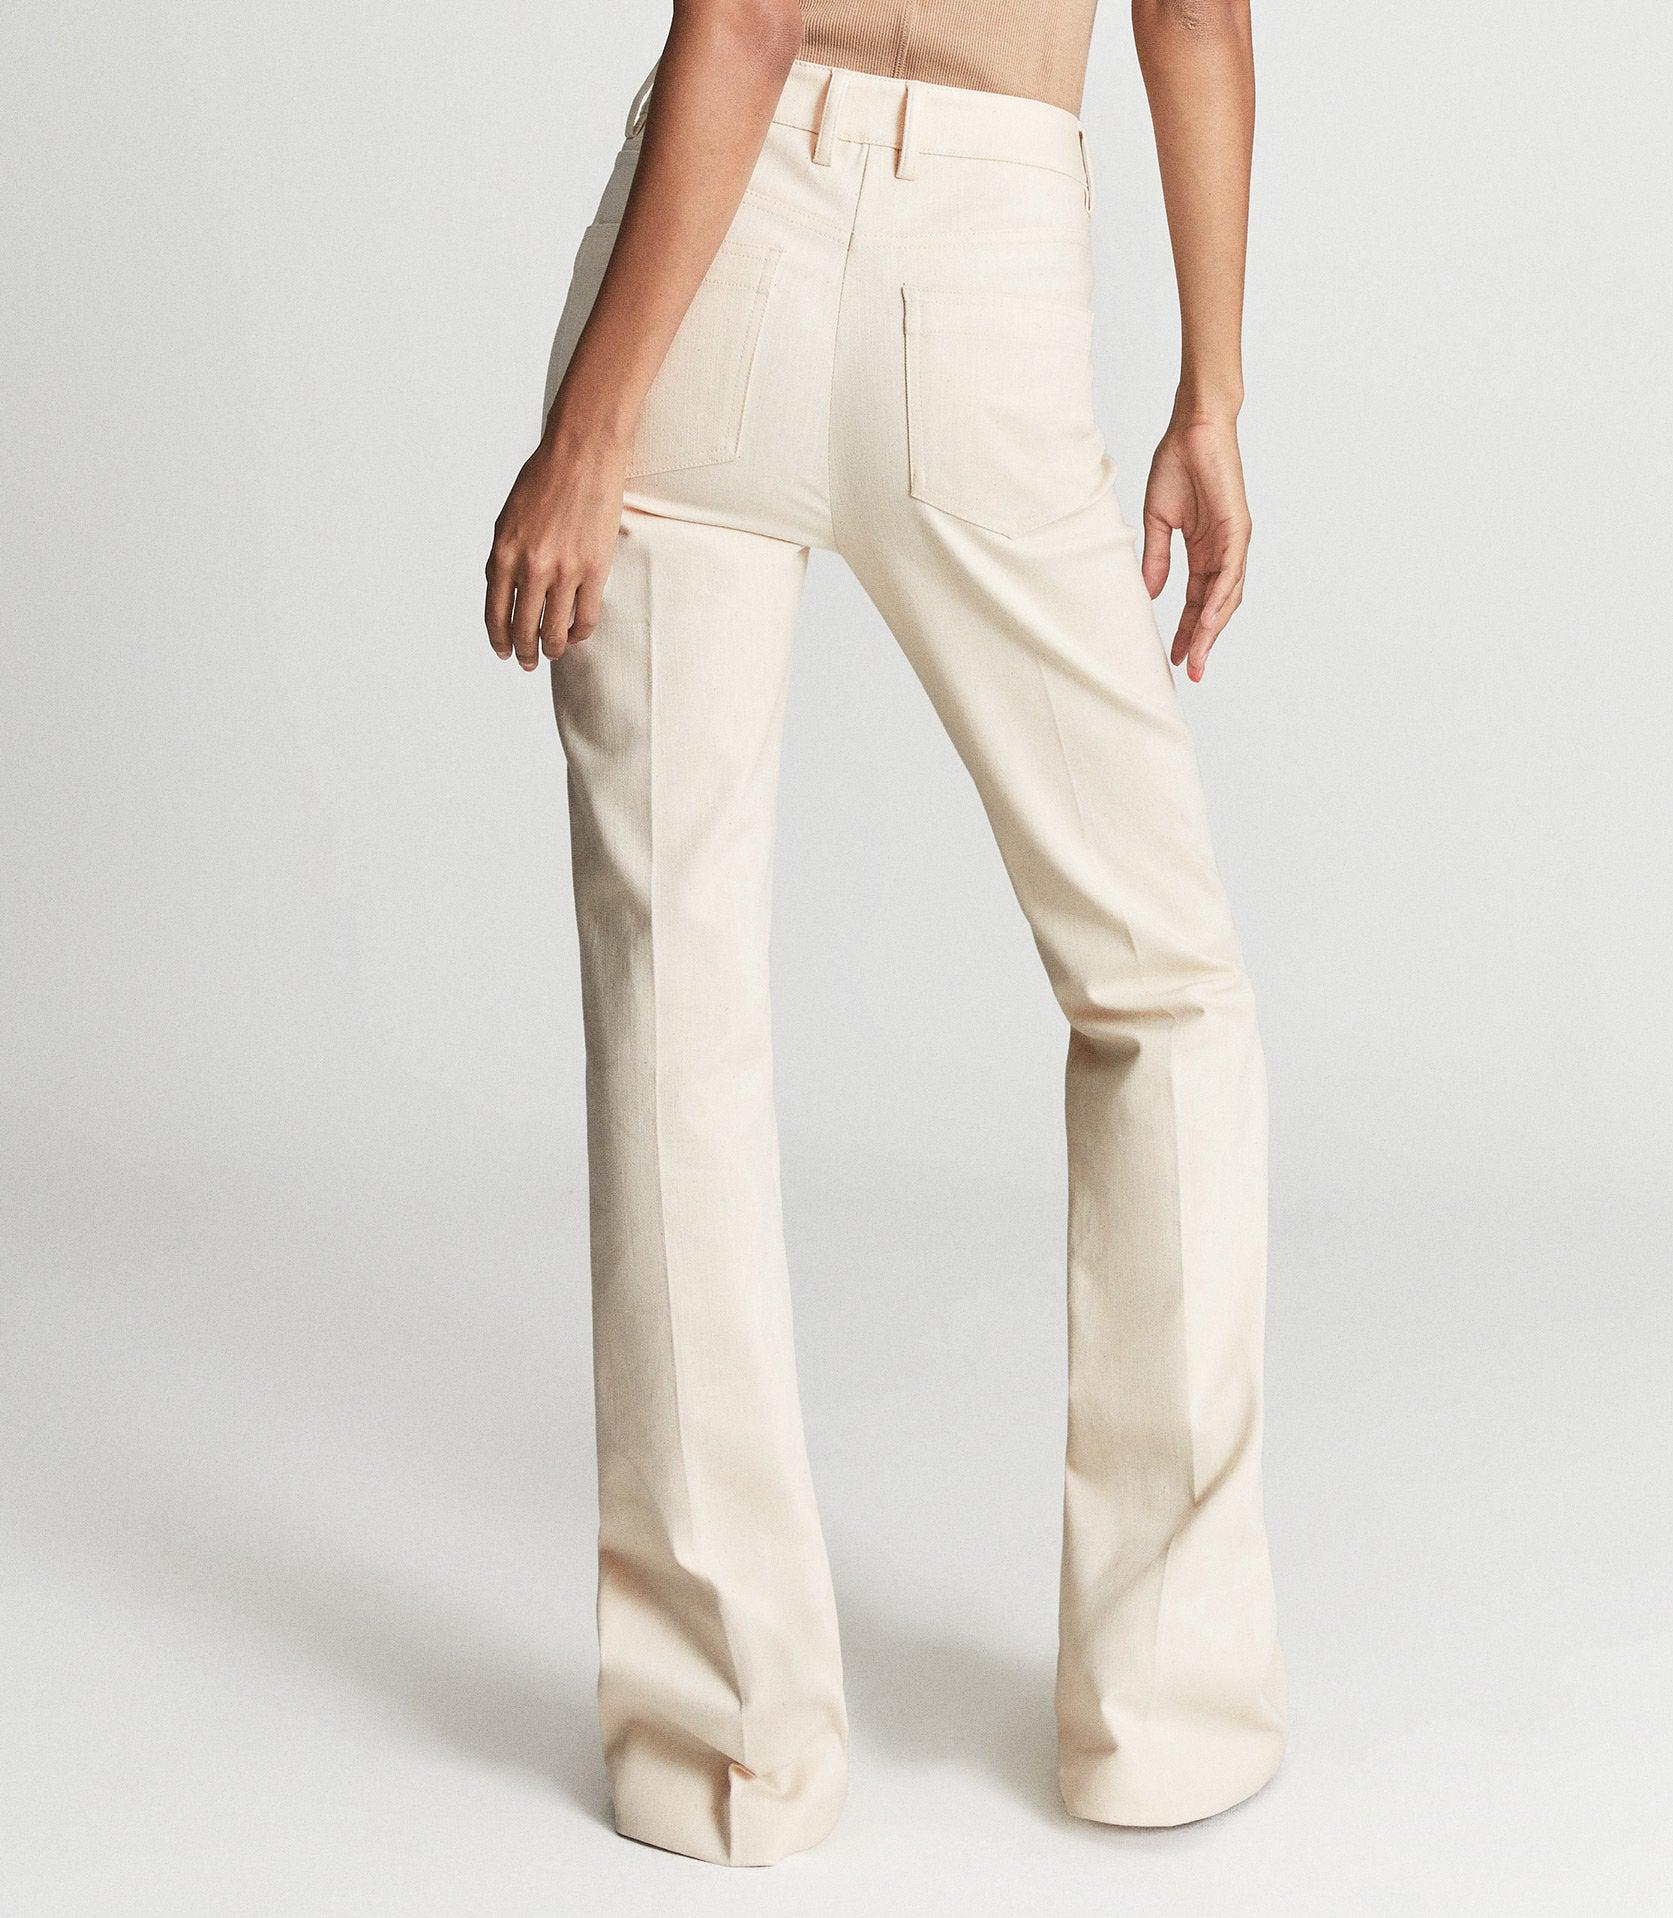 FLORENCE - HIGH RISE FLARED TROUSERS 3